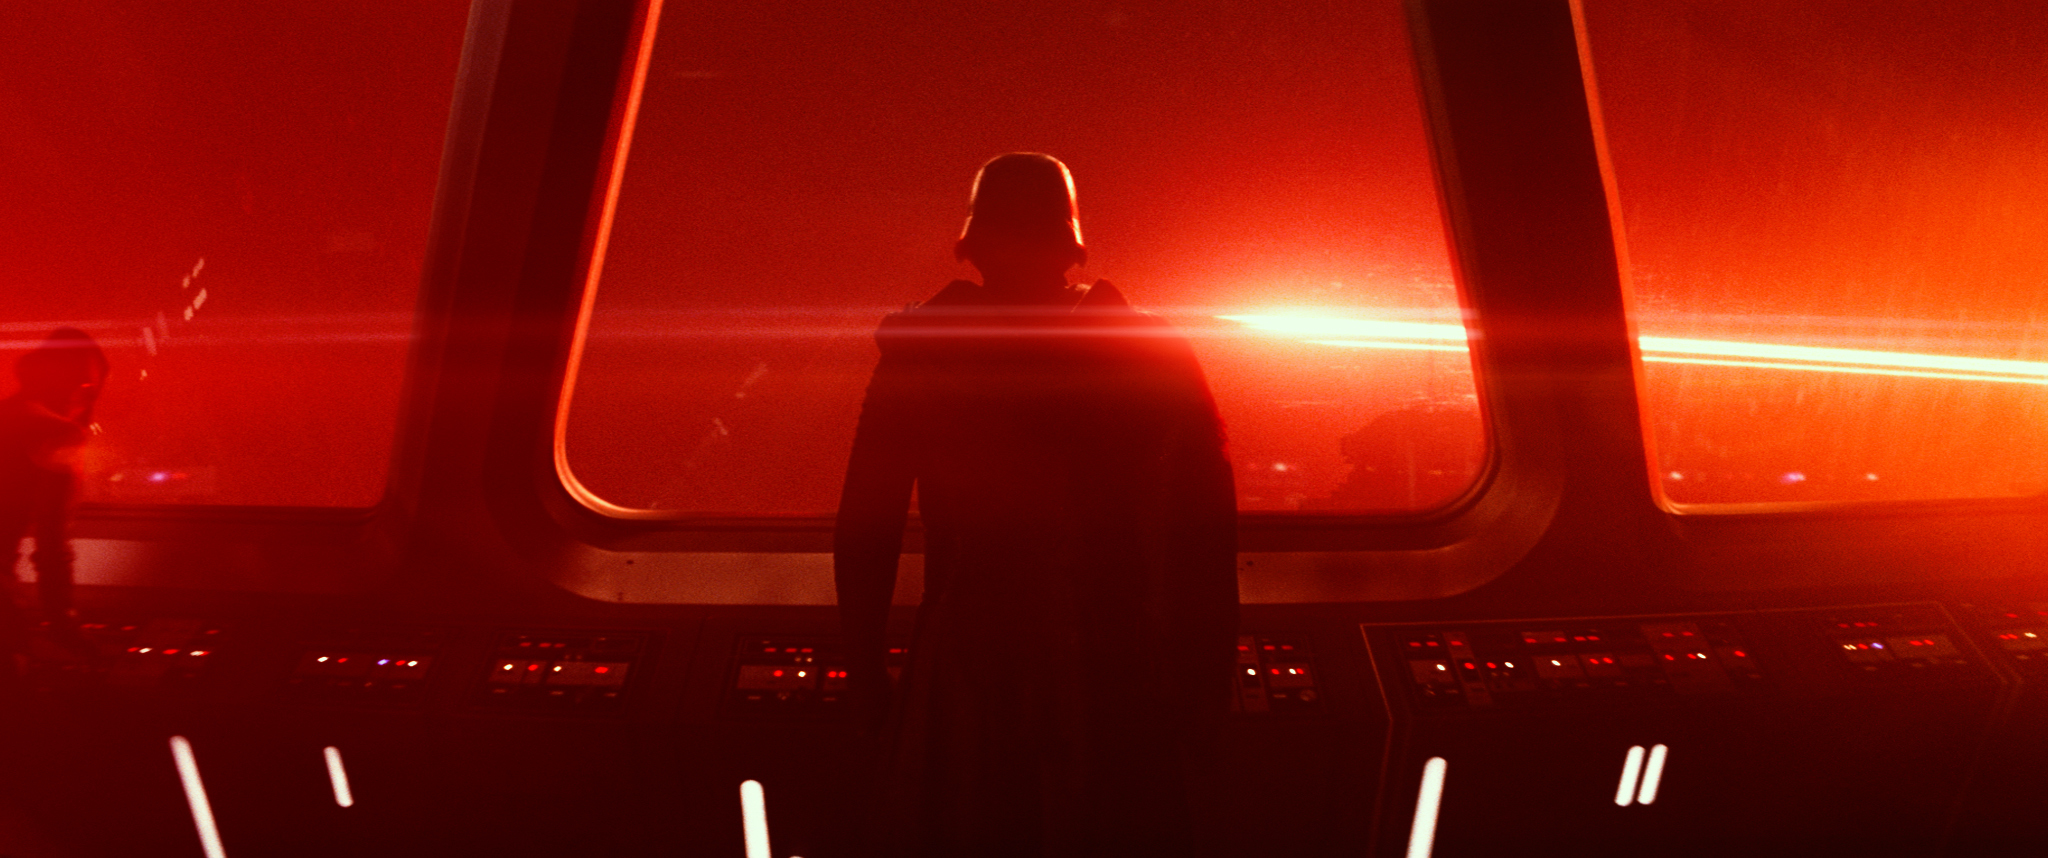 Kylo Ren stands alone on a starship